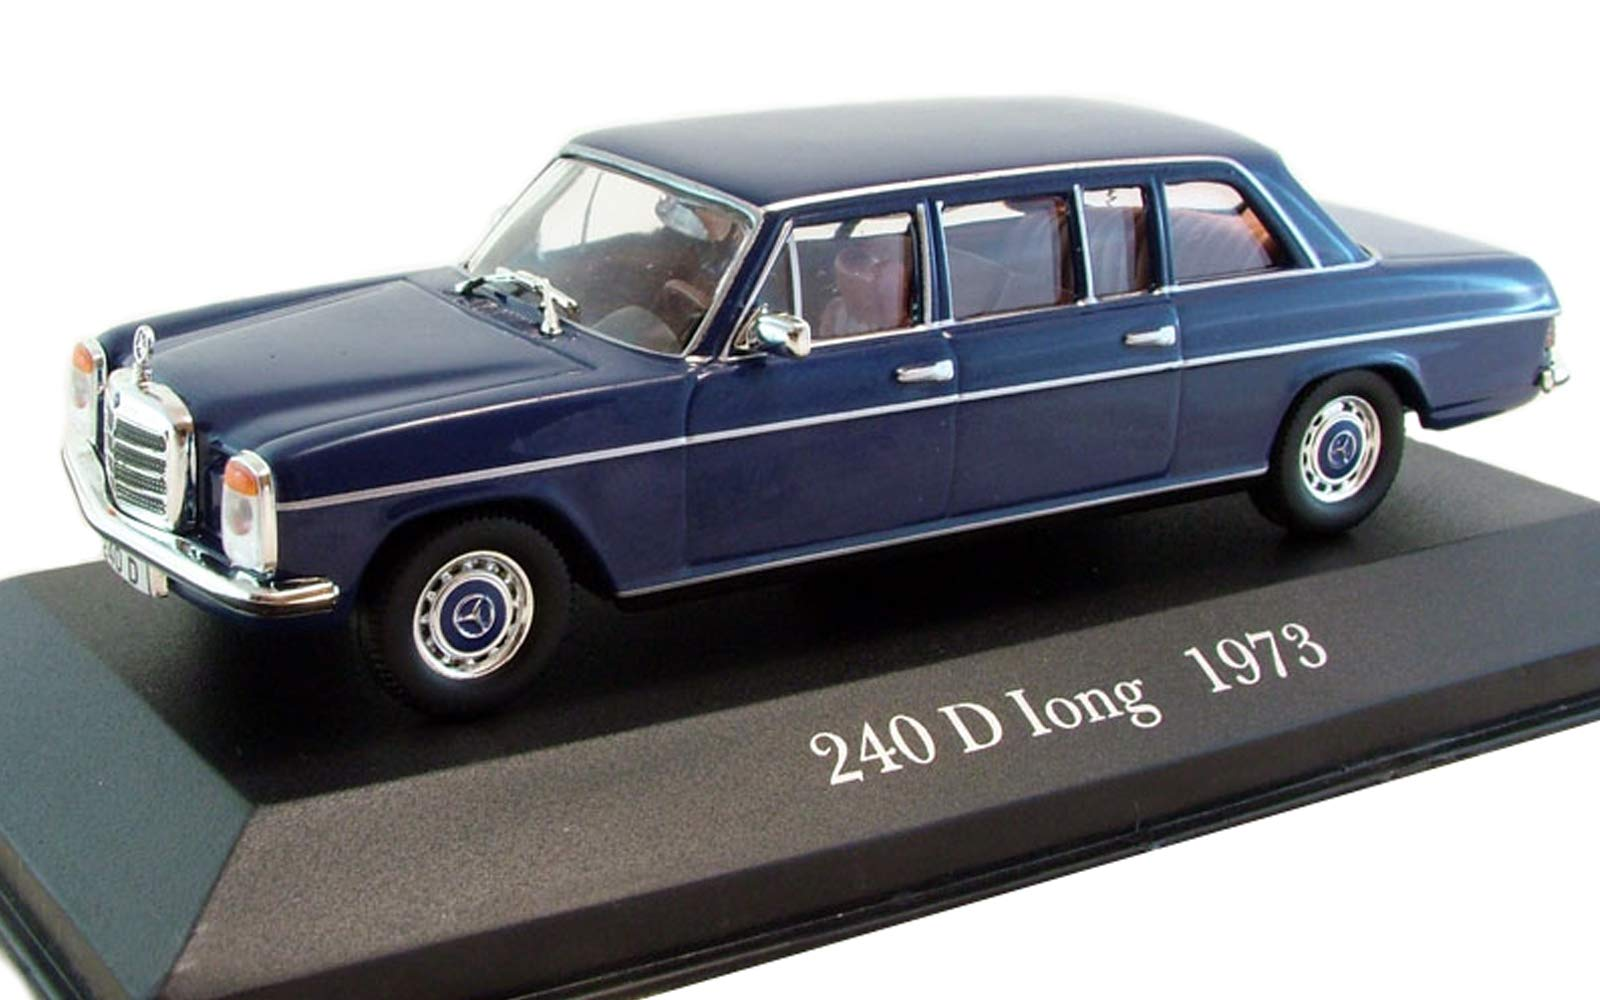 Mercedes-Benz 240 D Long 1973 Year German Executive Sedan 1/43 Collectible Model Vehicle Six-Cylinder Engine by Automotive Manufacturer Mercedes-Benz